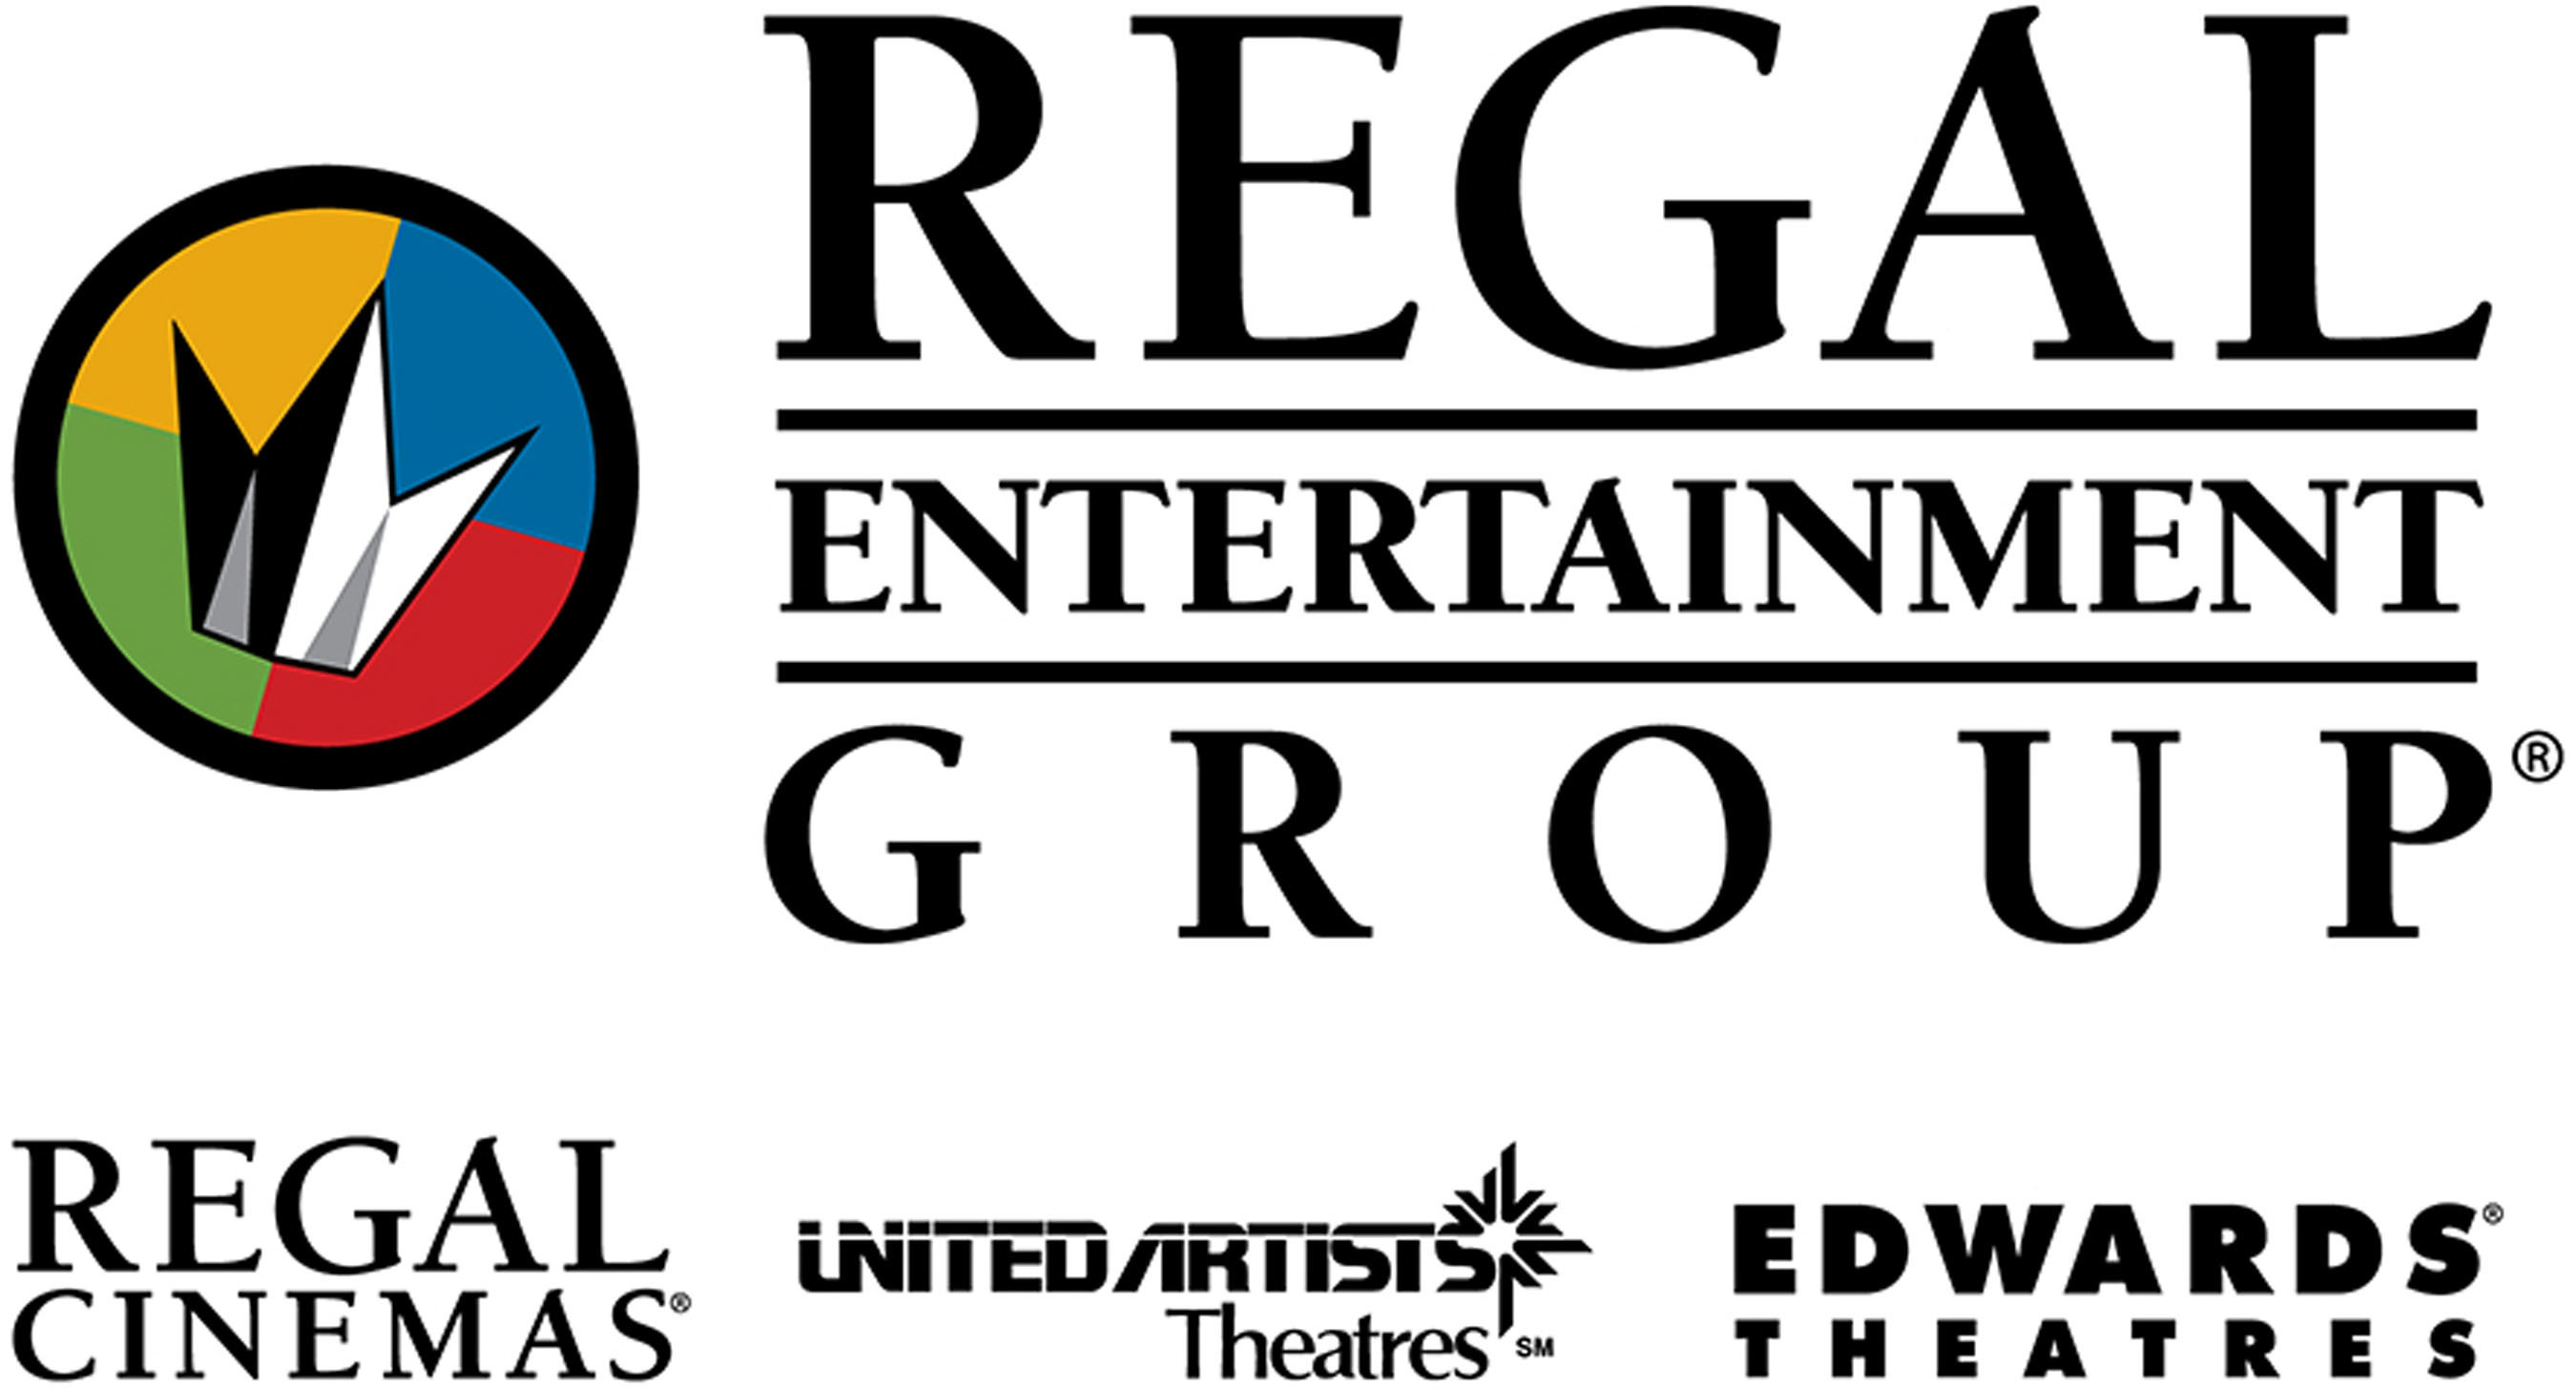 Regal Entertainment Group (PRNewsFoto/Regal Entertainment Group)